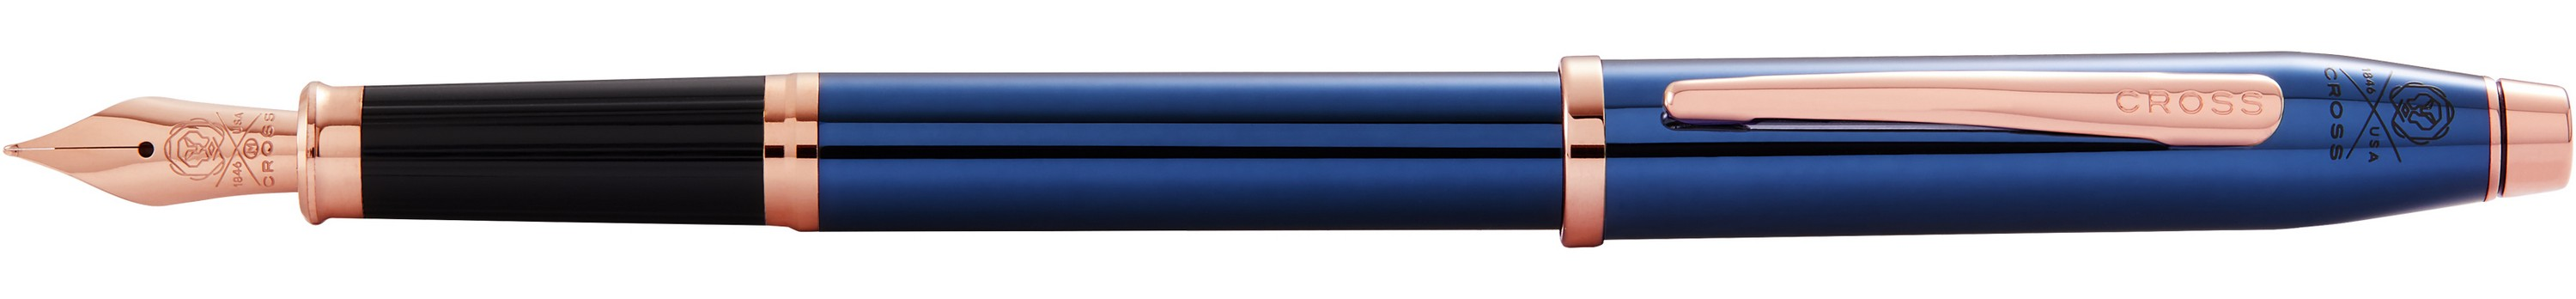 546442842-126 - Century II Translucent Cobalt Blue Lacquer w/ Rose Gold PVD Nib & Appointments Med. Fountain Pen - thumbnail